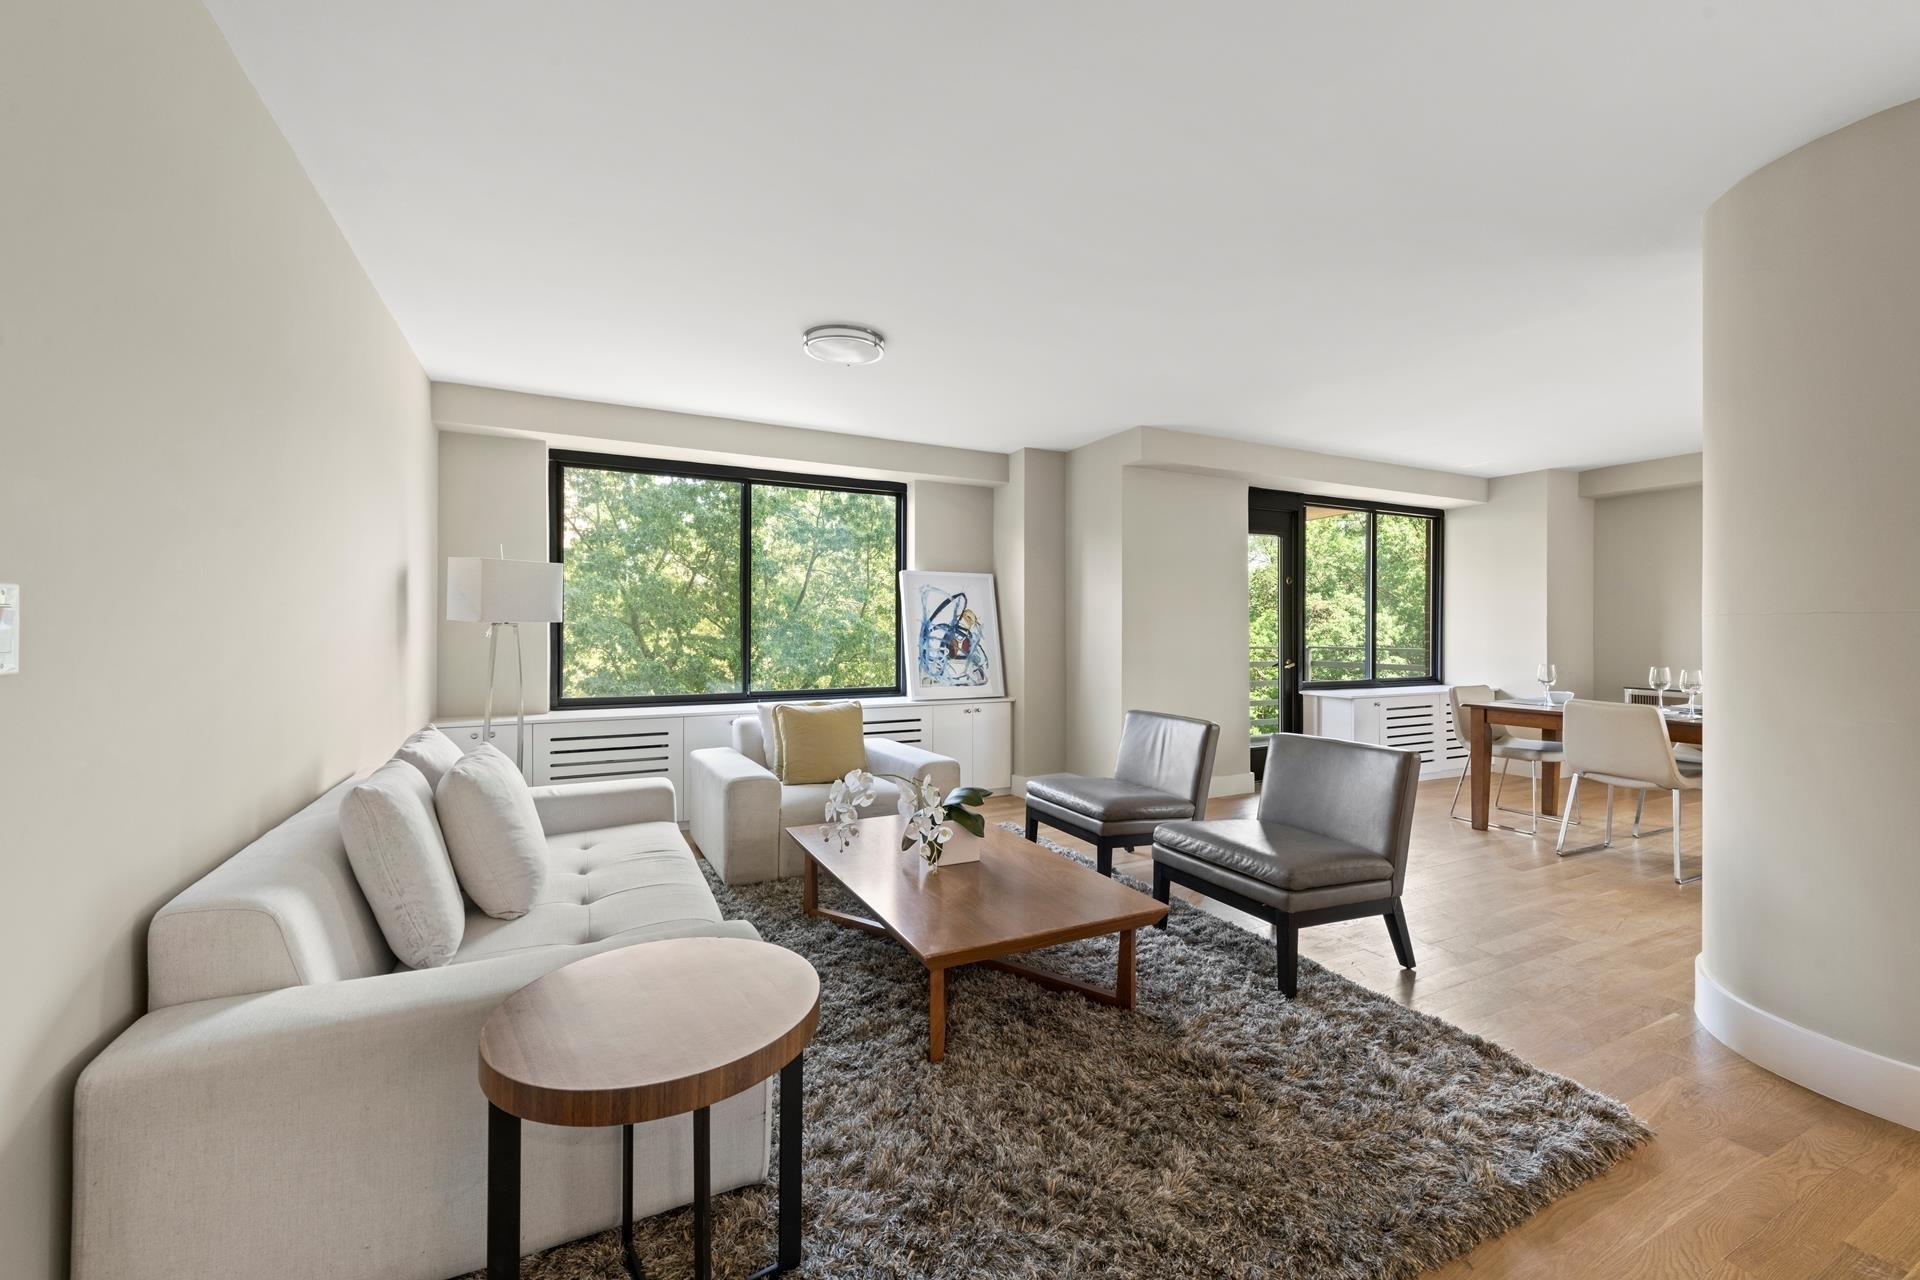 1. Condominiums for Sale at Vaux, The (Park Wes, 372 CENTRAL PARK W, 5BC Manhattan Valley, New York, NY 10025